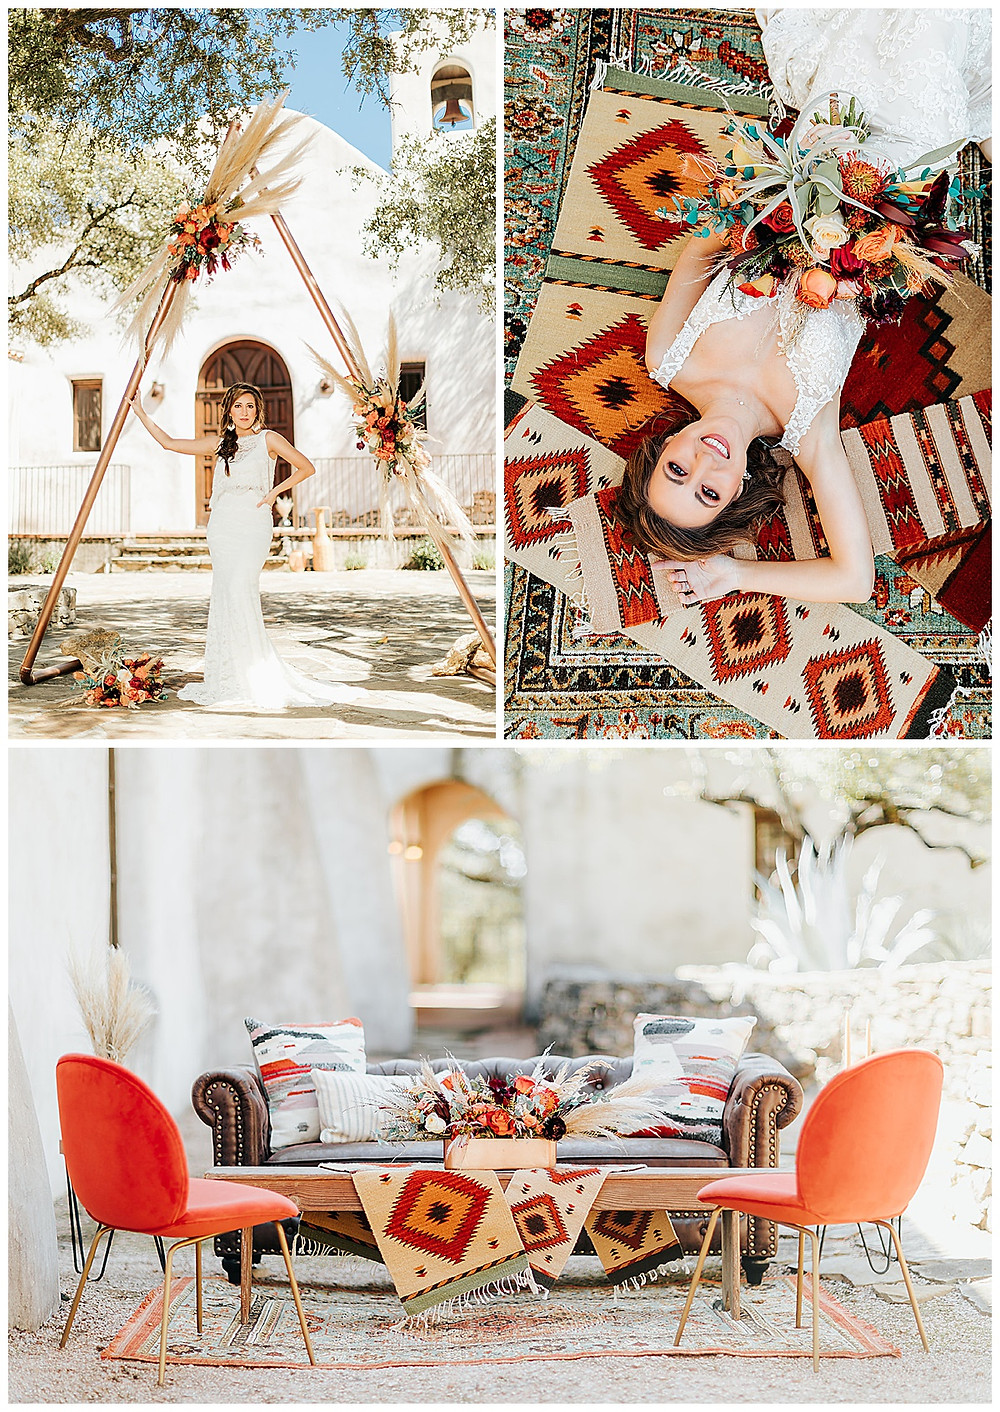 Southwestern Wedding | Hill Country Wedding | Lost Mission Wedding | Hill Country Wedding Planner | San Antonio Wedding Planner | Wedding Cake | Invitation Suite | Wedding Centerpiece | Wedding Ceremony | Bridal Hair & Makeup